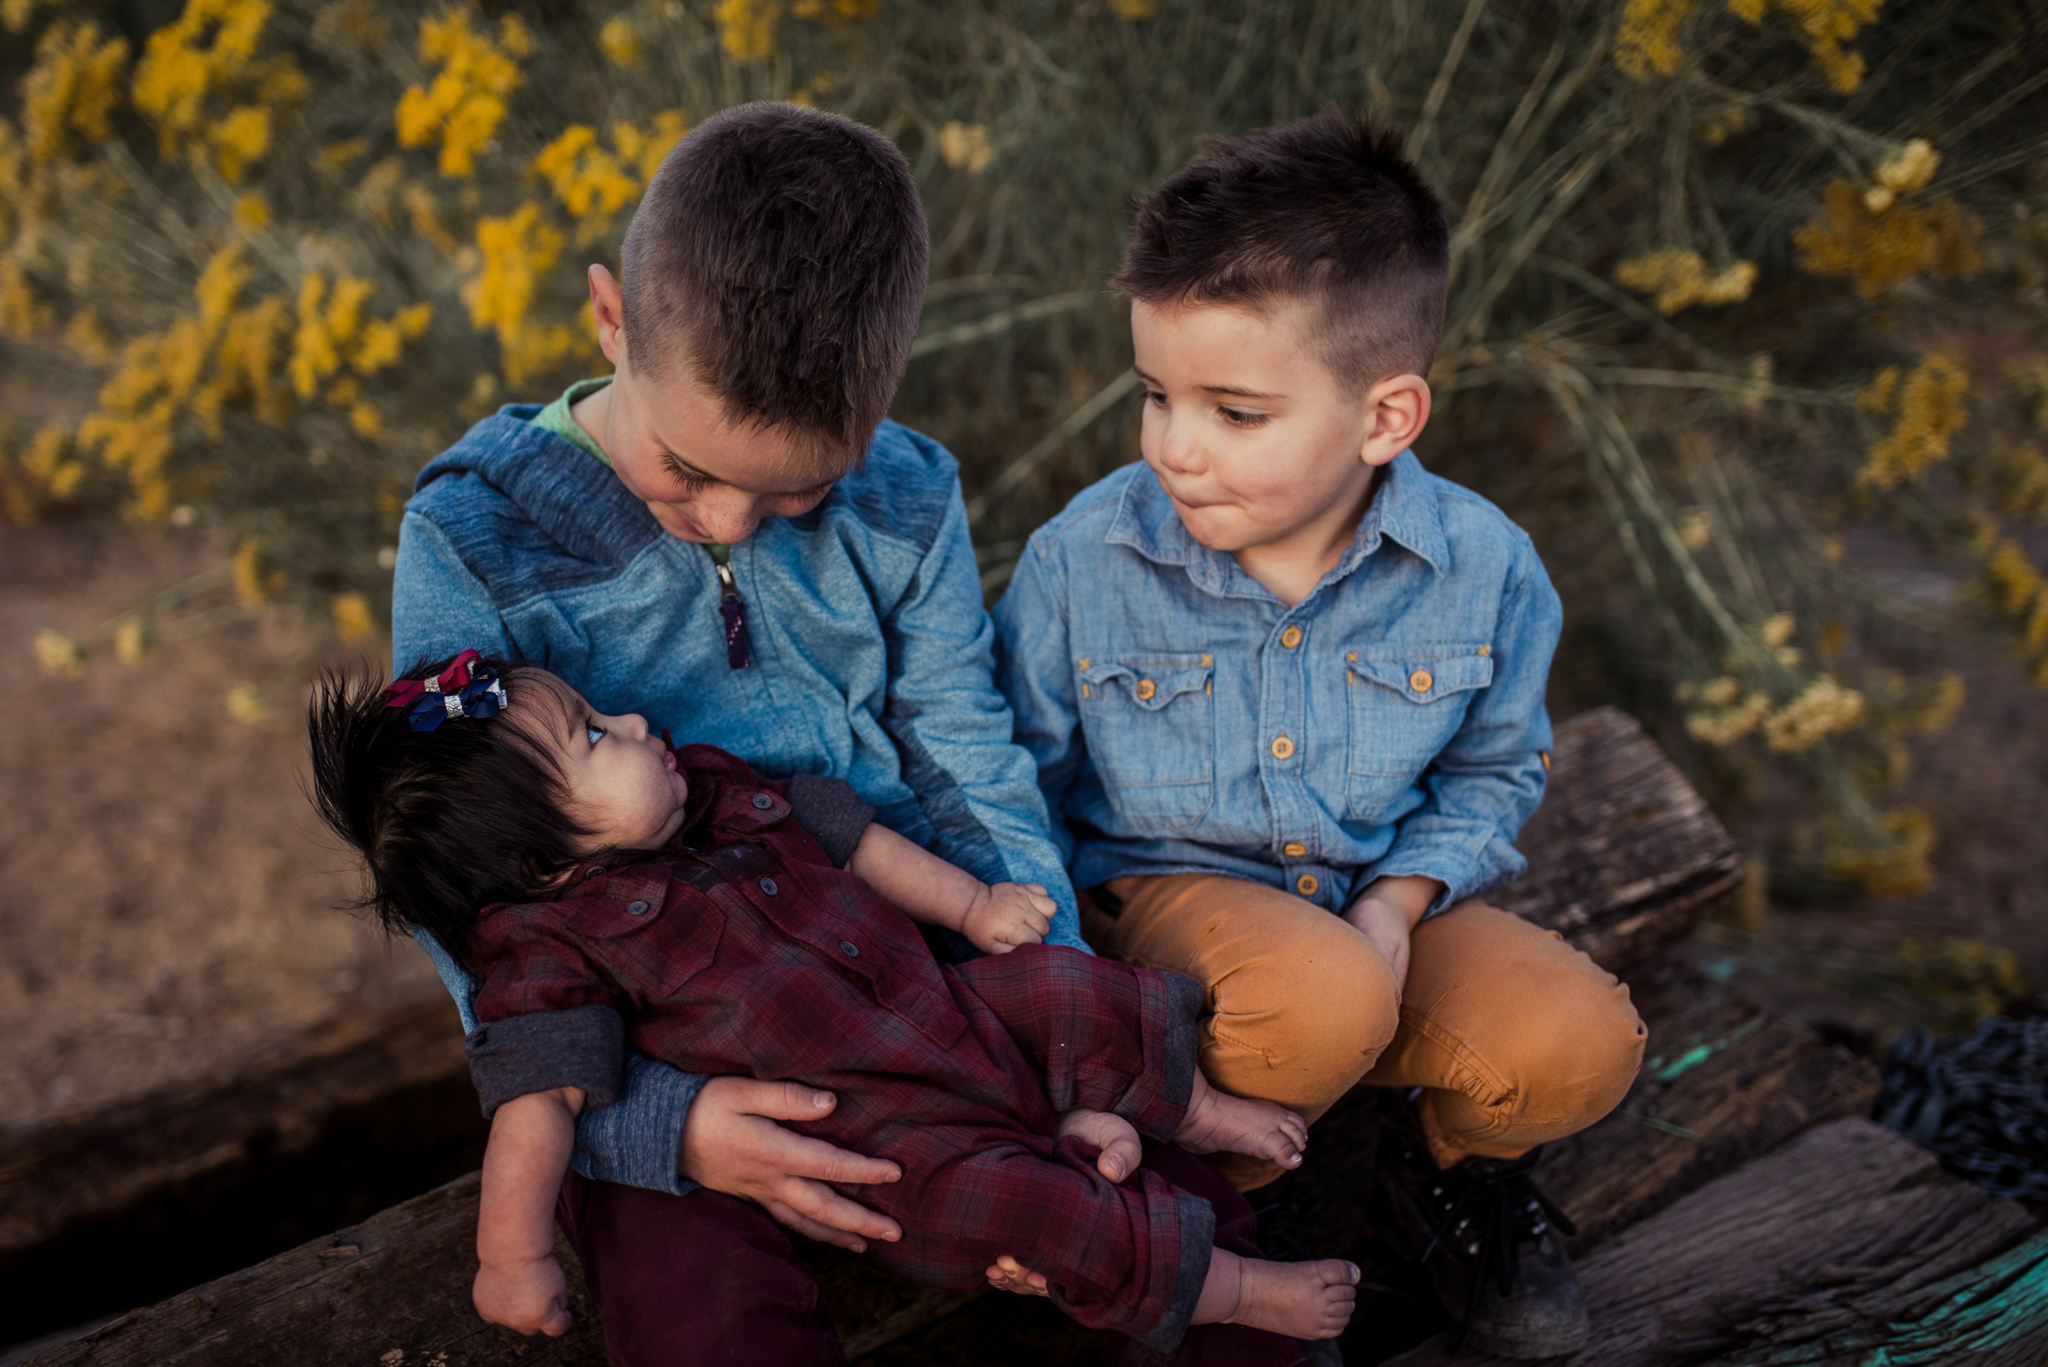 Colomb Family - We had a great time working with Joshua for our family photos. He was really patient and worked well with our 3 small children, which is not always easy! Thanks to Joshua we now have beautiful family photos that we will always treasure.